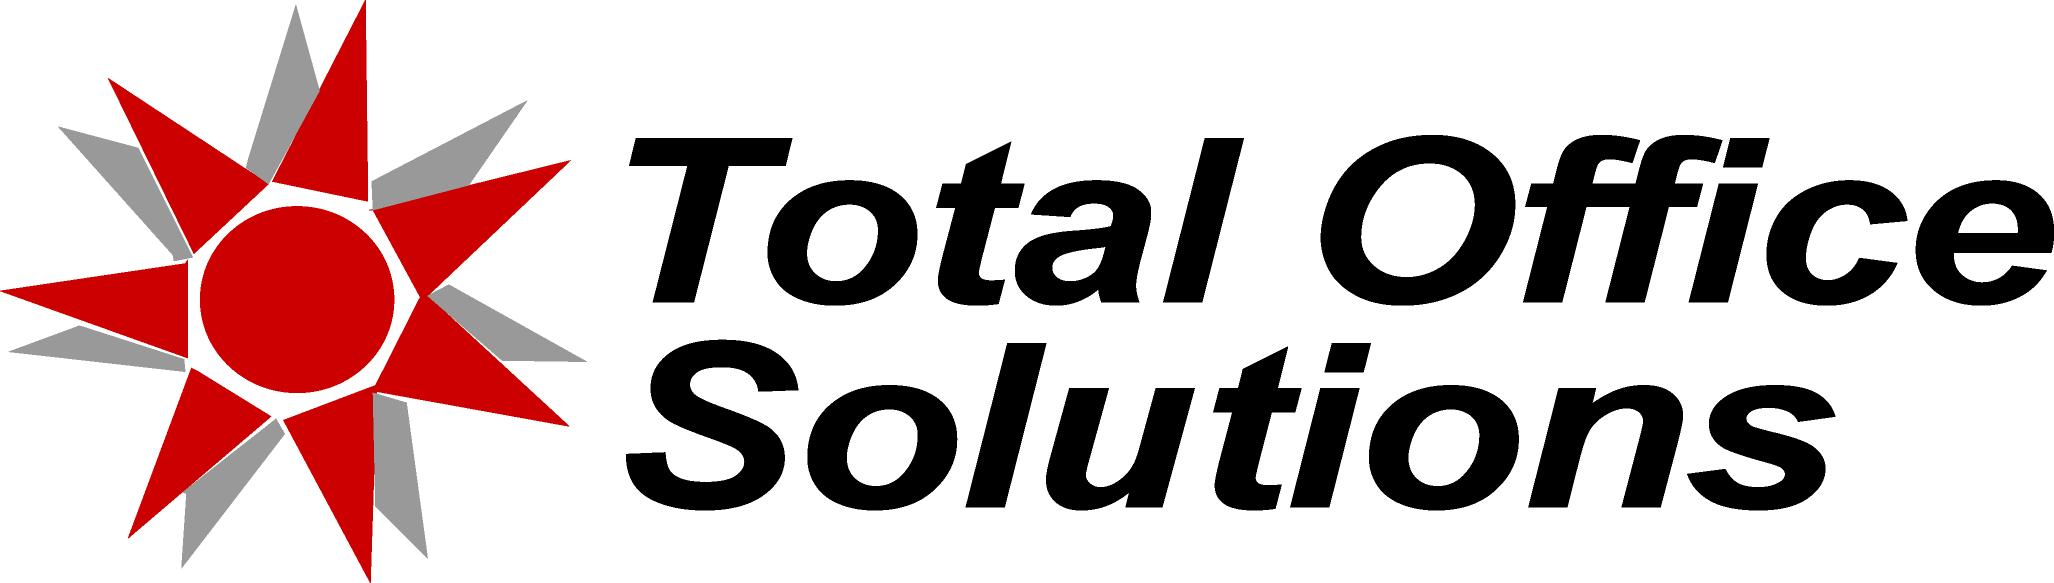 Total Office Solutions